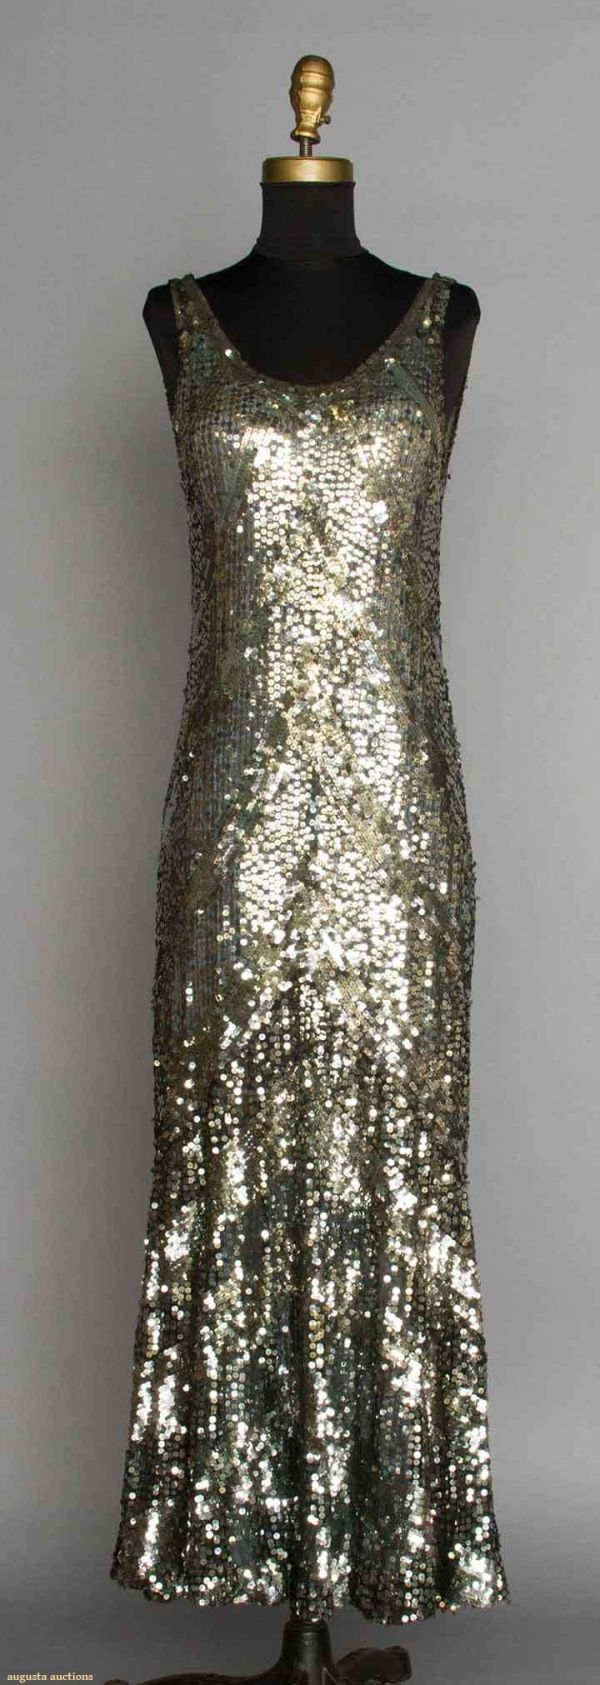 SILVER EVENING GOWN, 1930s by Terese Vernita